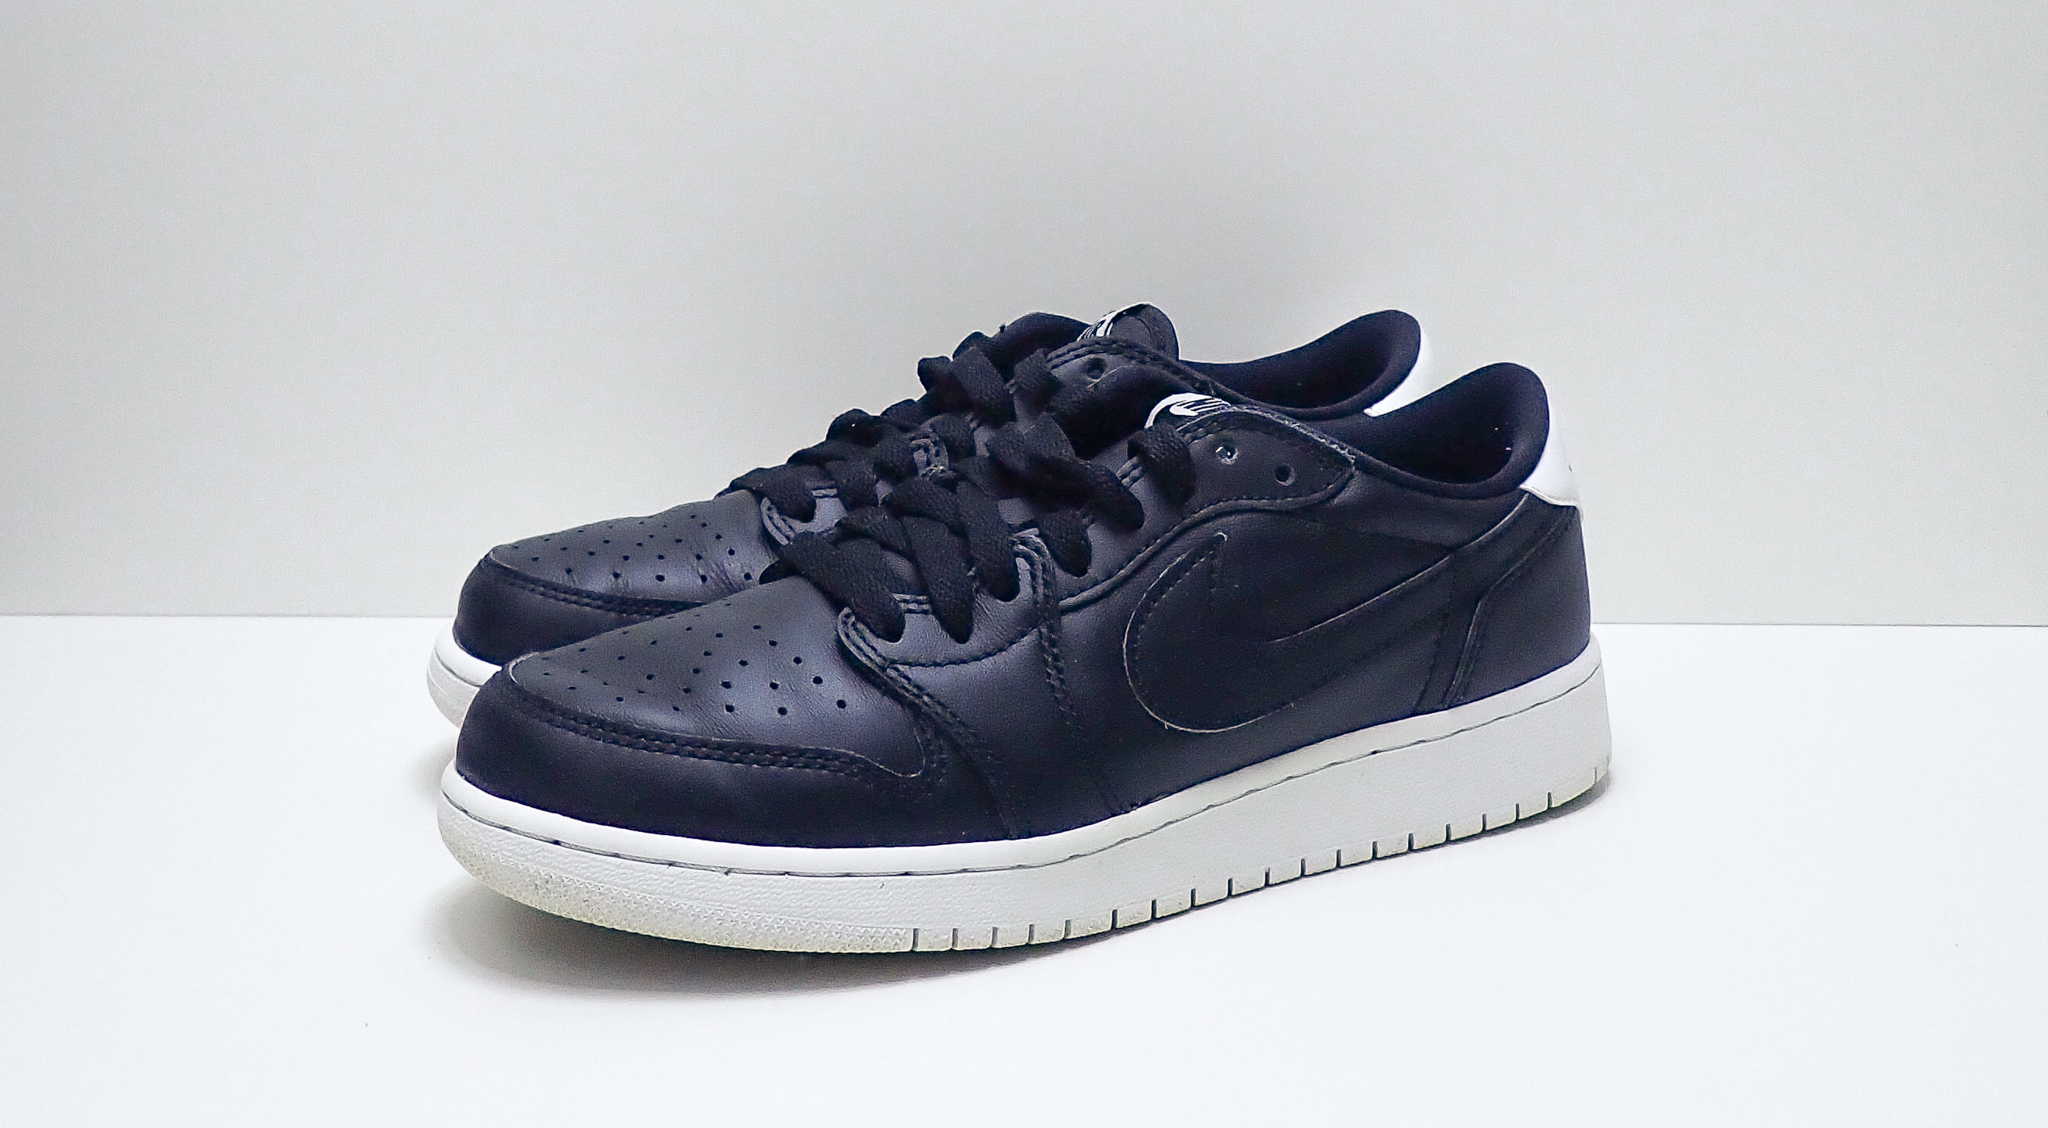 Jordan 1 Low OG BG Cyber Monday (GS)